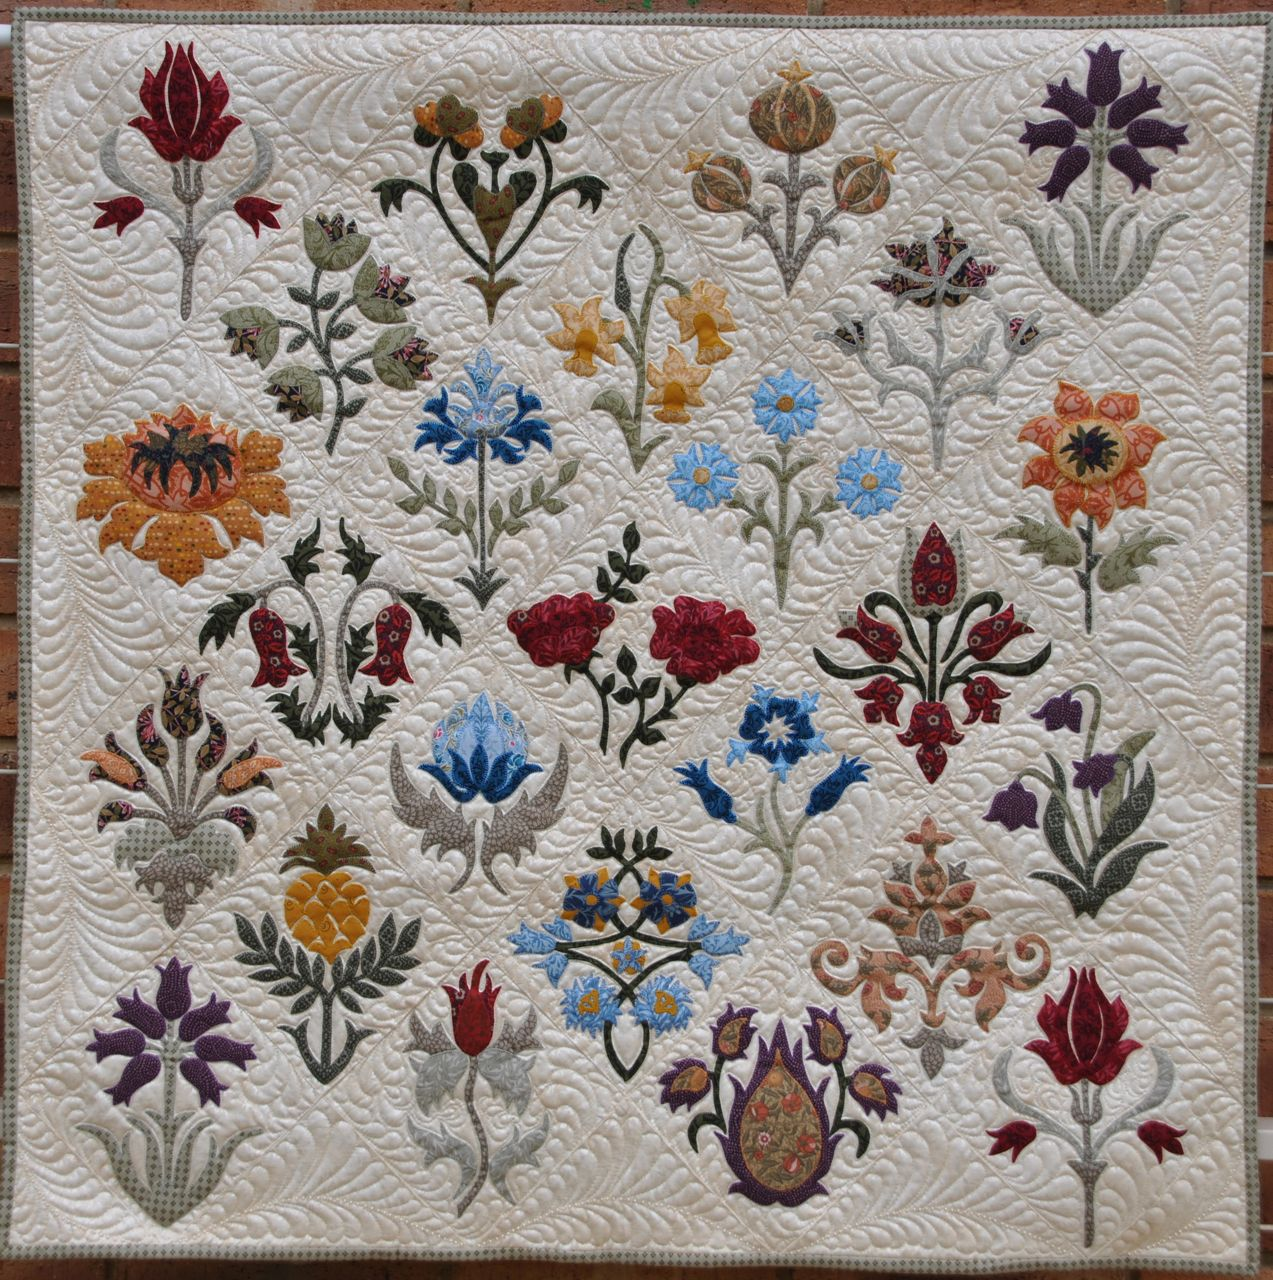 William Morris Machine Embroidery Designs